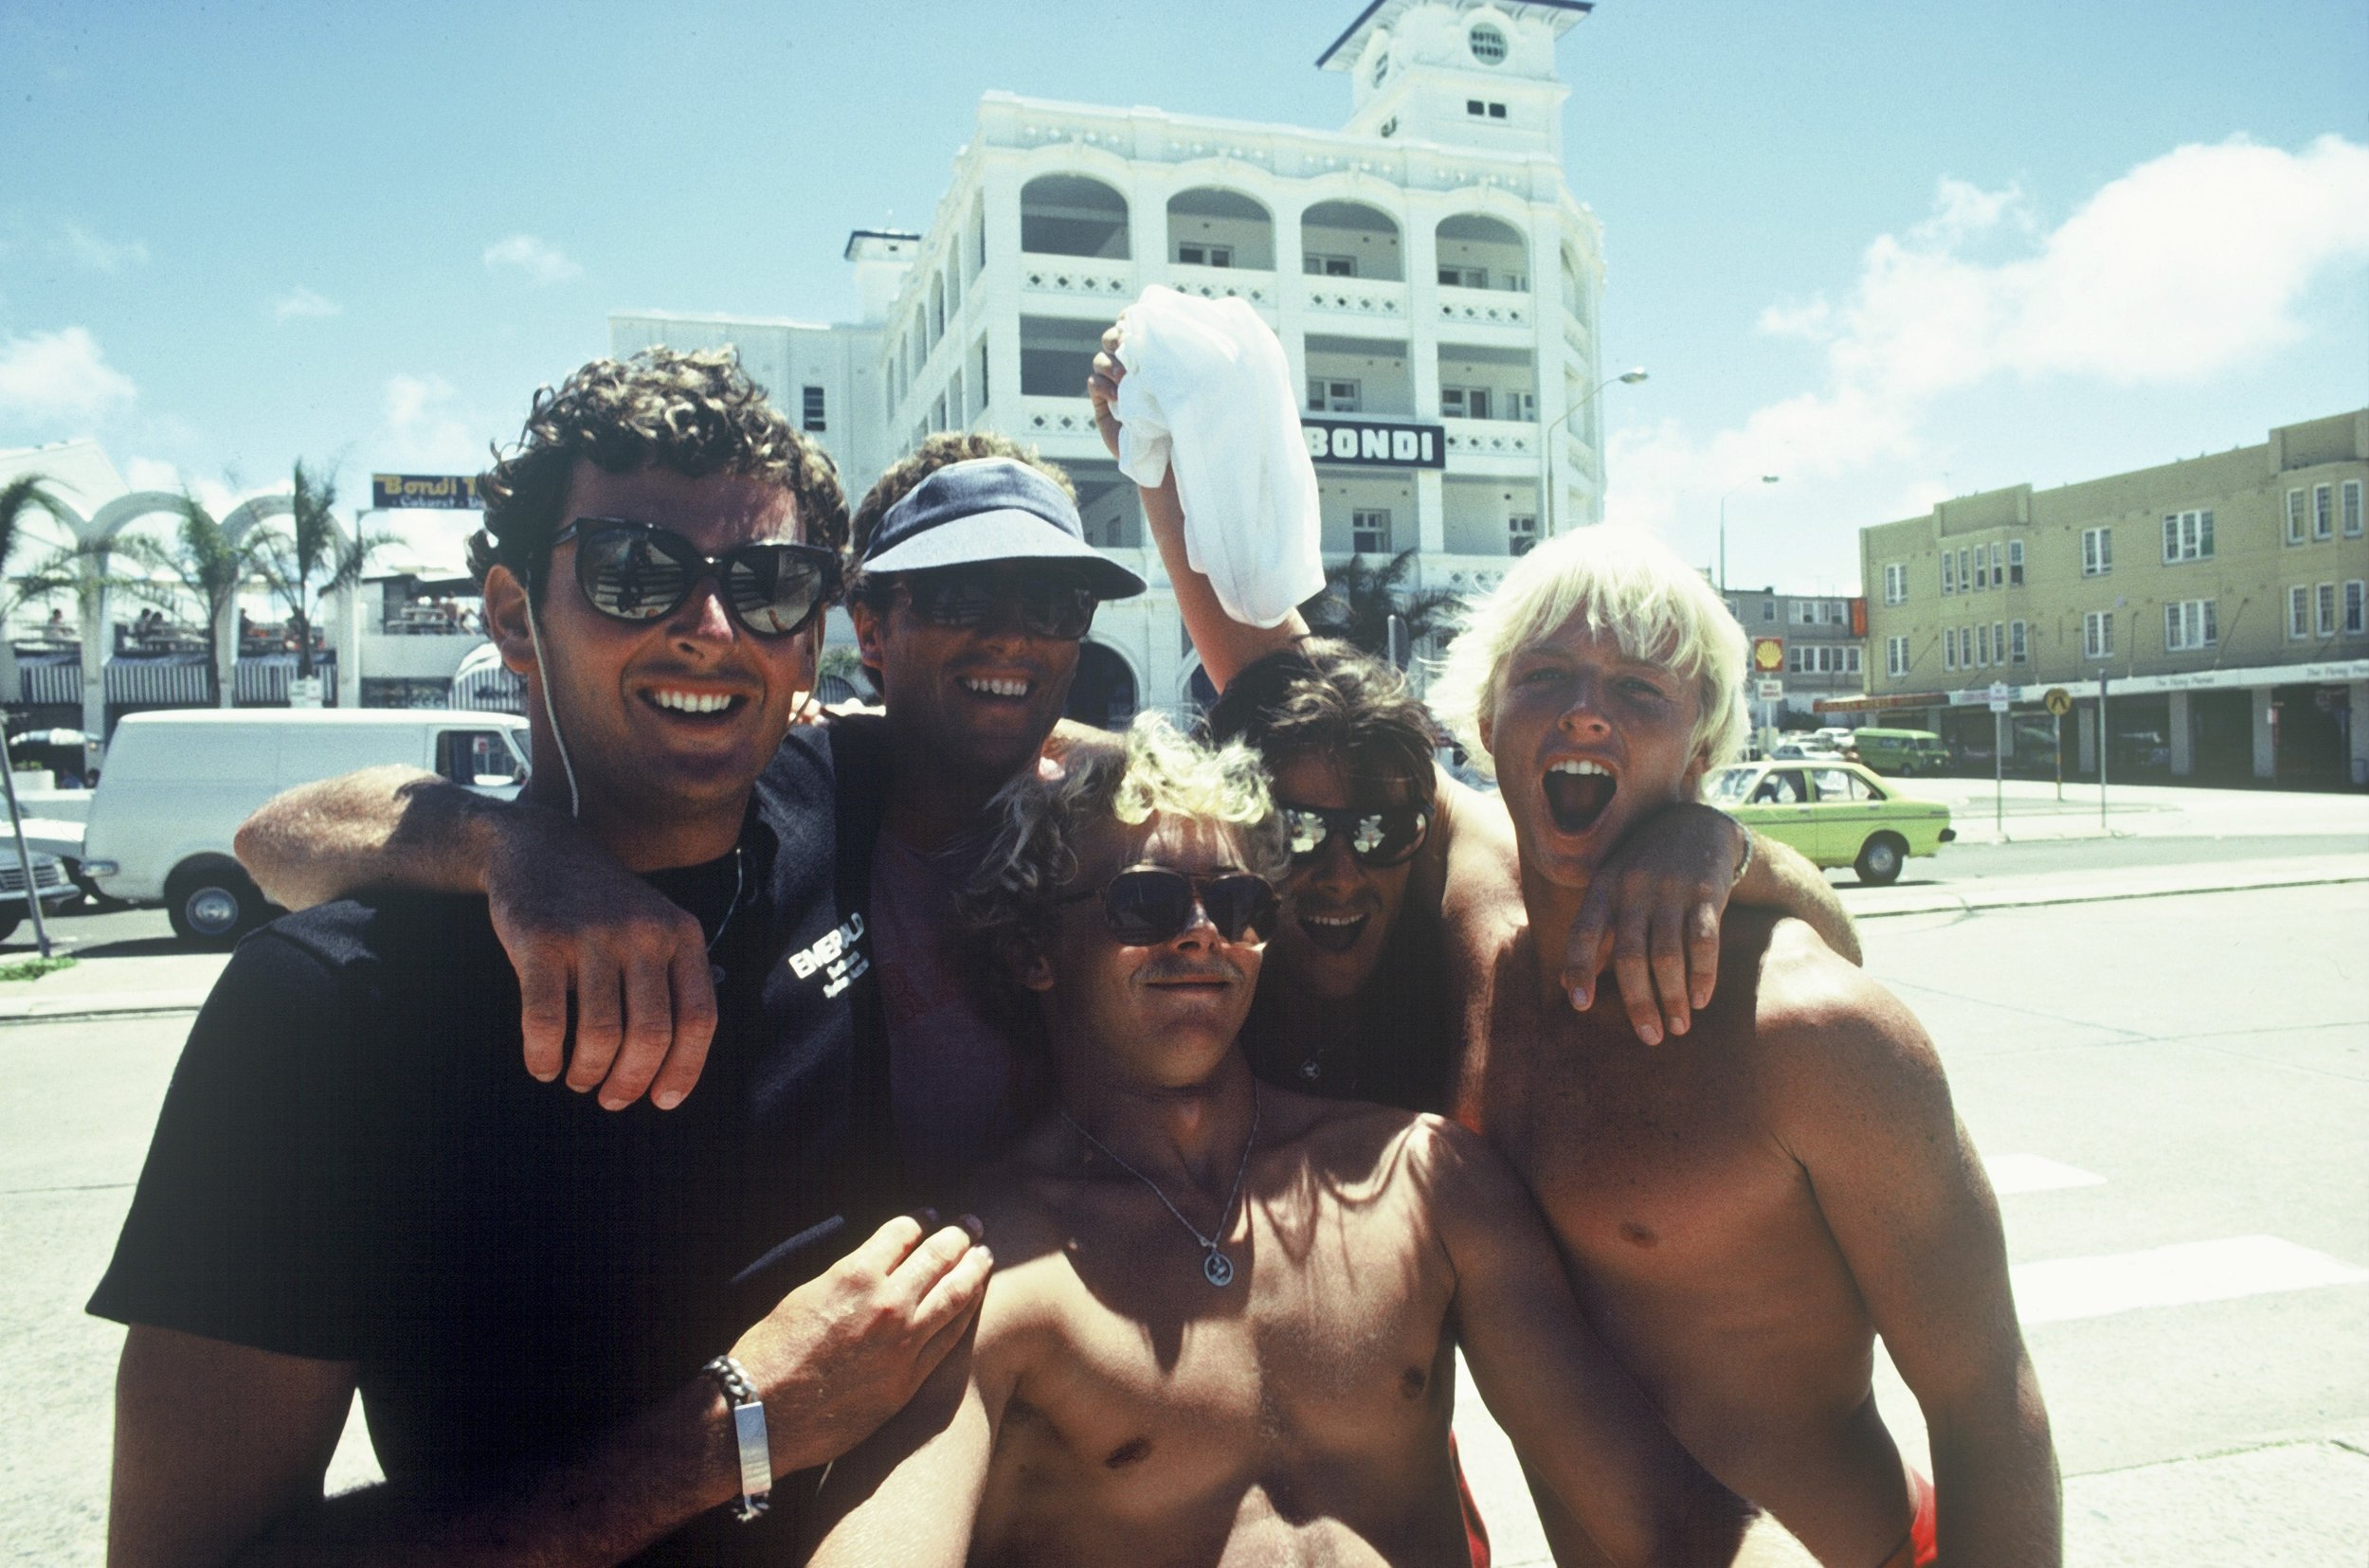 When we were kings - Derek Rielly on the surfing kings who once ruled Bondi, and the world.